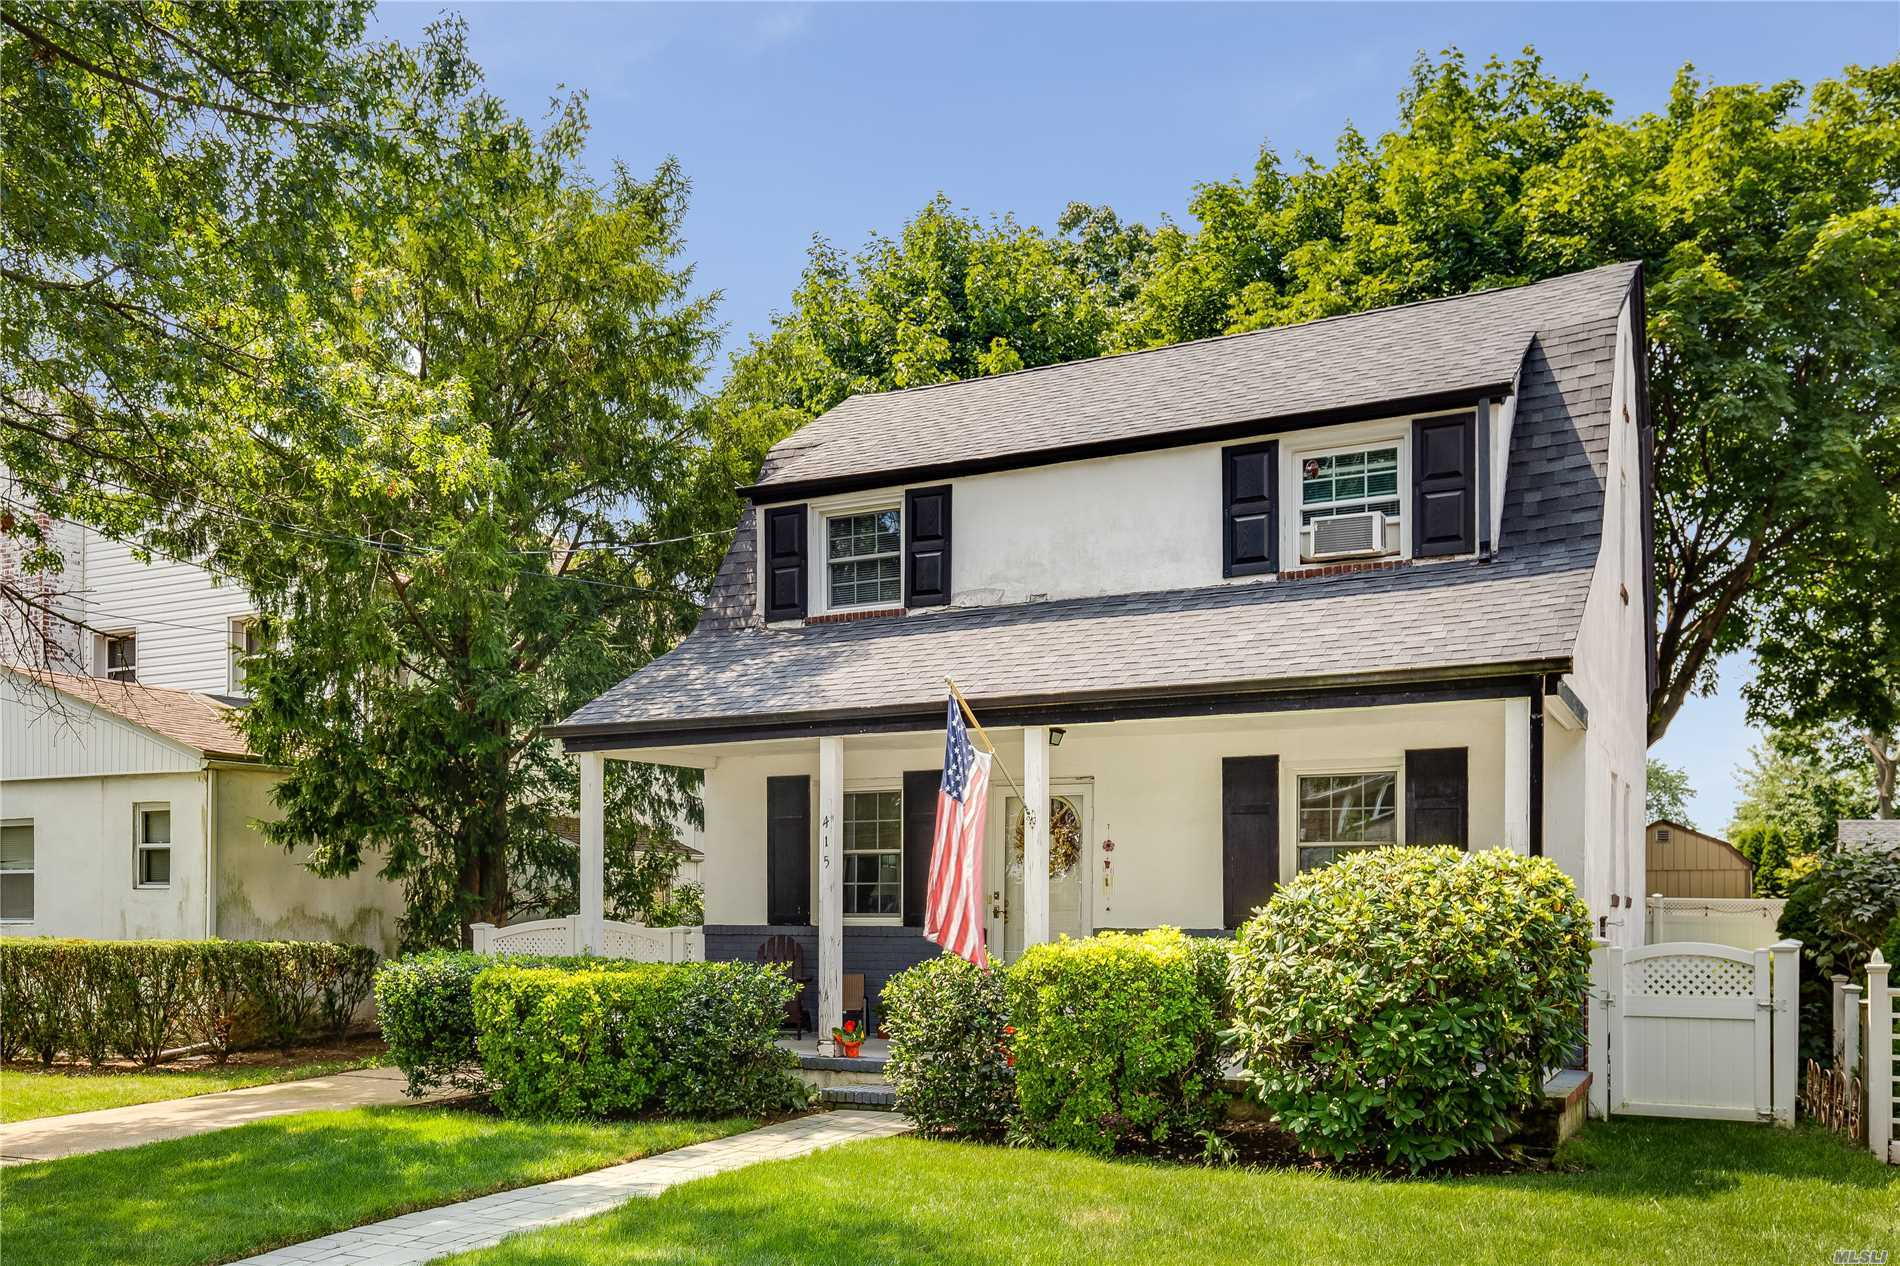 Lovely Colonial With Front Porch In The Heart Of New Hyde Park. Hardwood Floors. Newer Therma Pane Windows. Newer Roof And Fence. Updated Bathroom. Updated Electric. Private Backyard. Newer Front Paver Walkway. In Ground Sprinklers. One Car Garage. Walk To Schools And Lirr